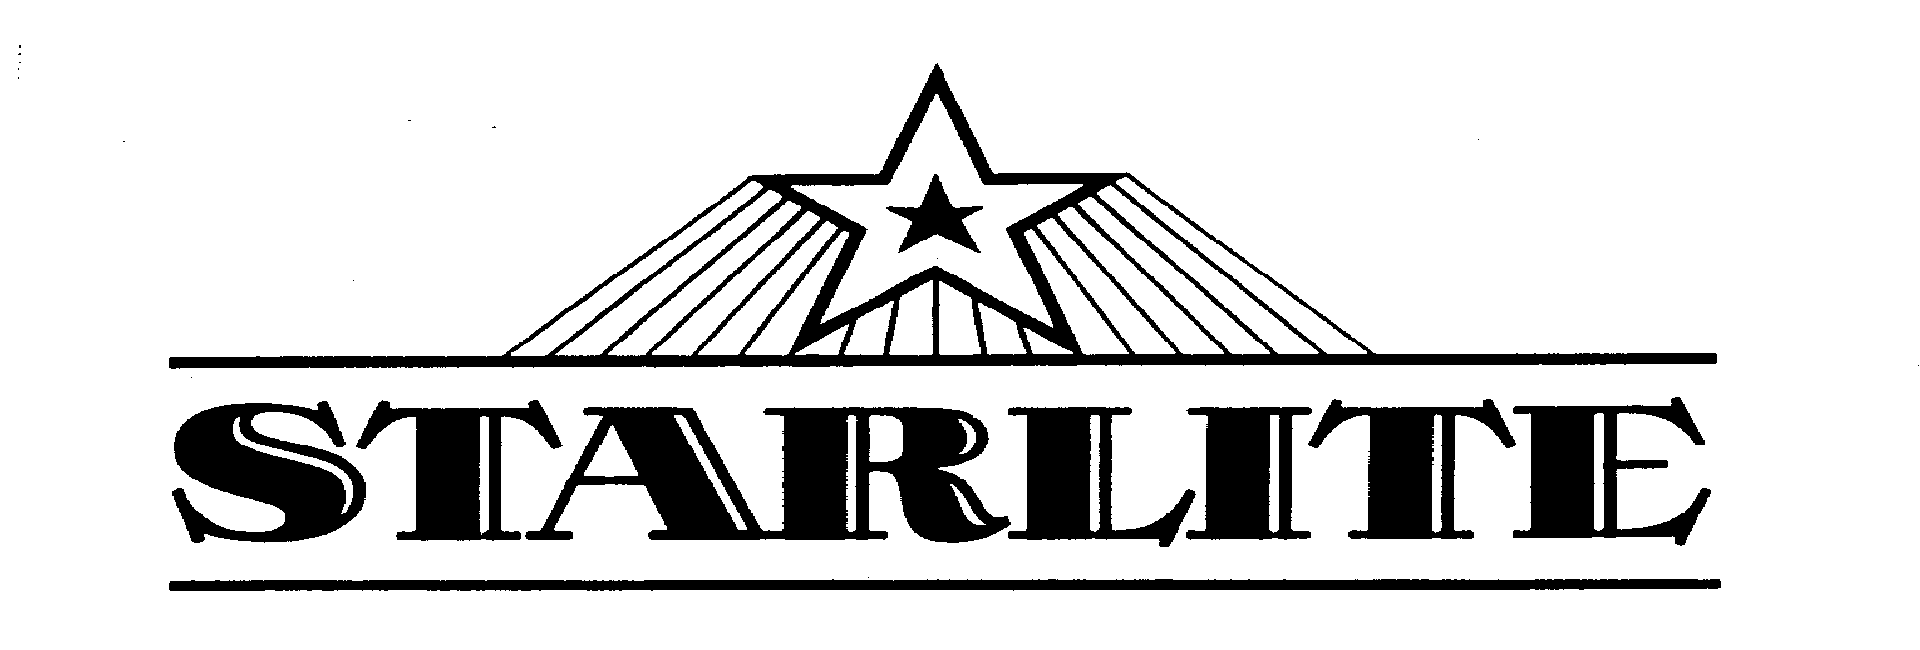 Welcome to Starlite Rcords